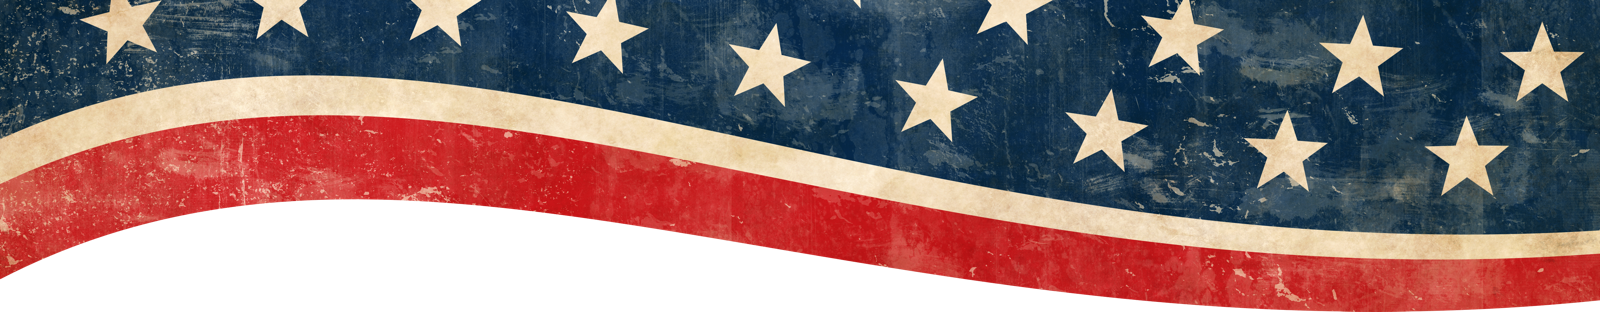 American flag banner png. Fast lunchrock co